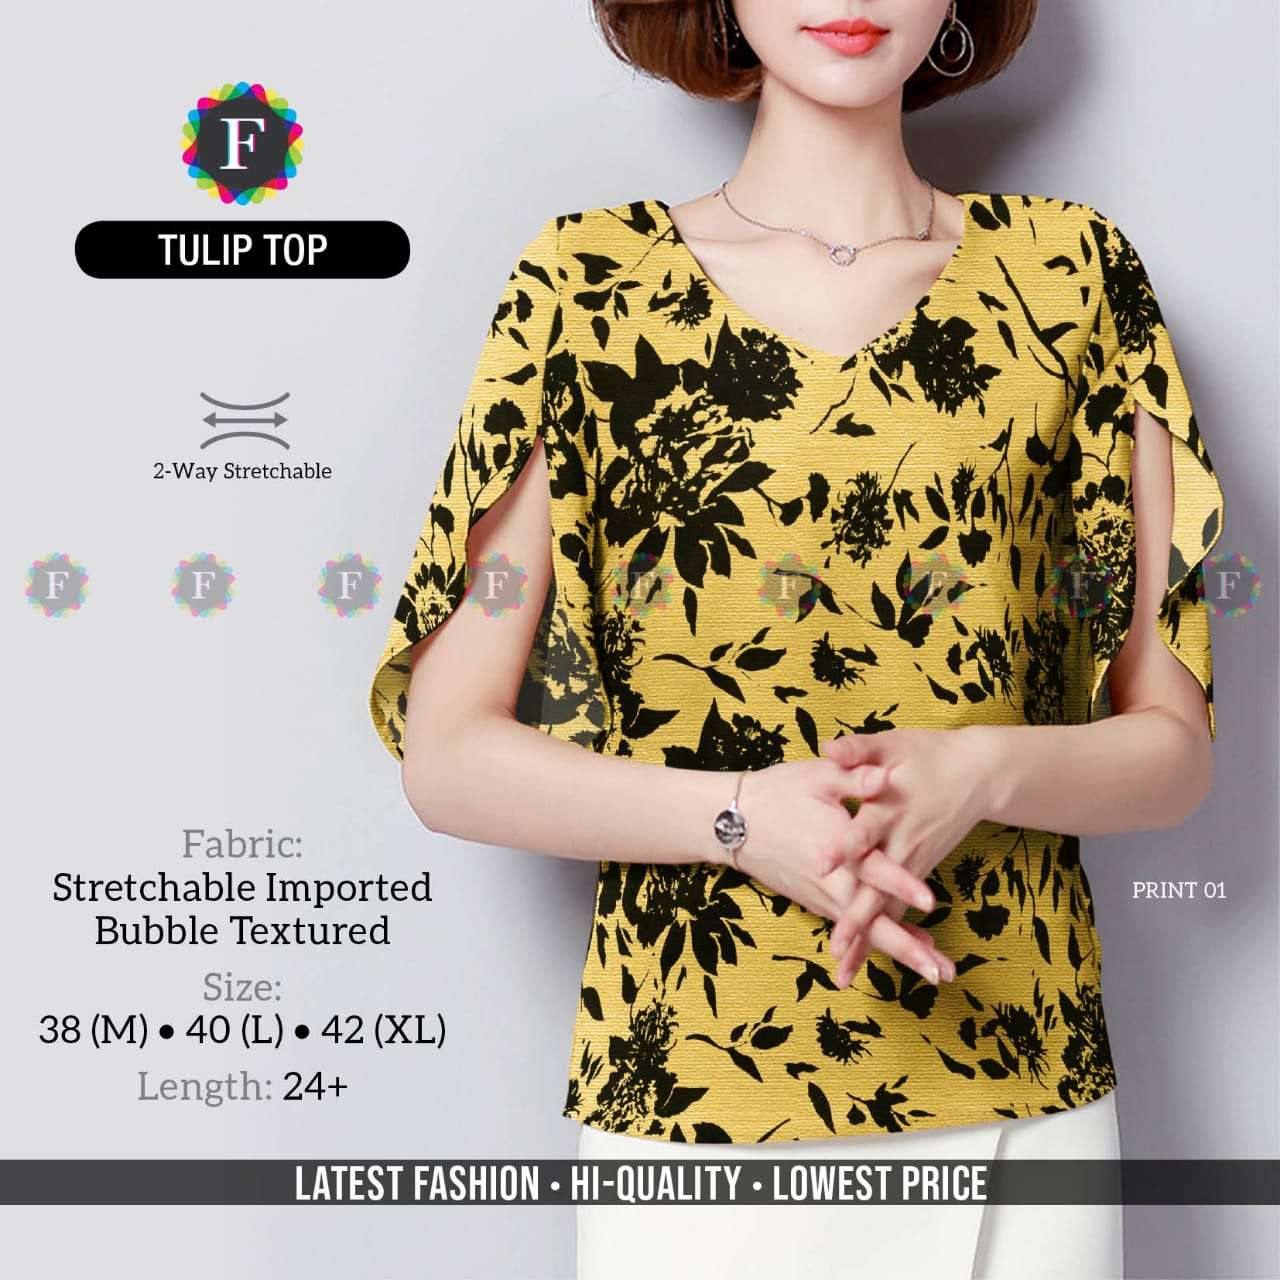 tulip top imported girl western tops collection wholesaler